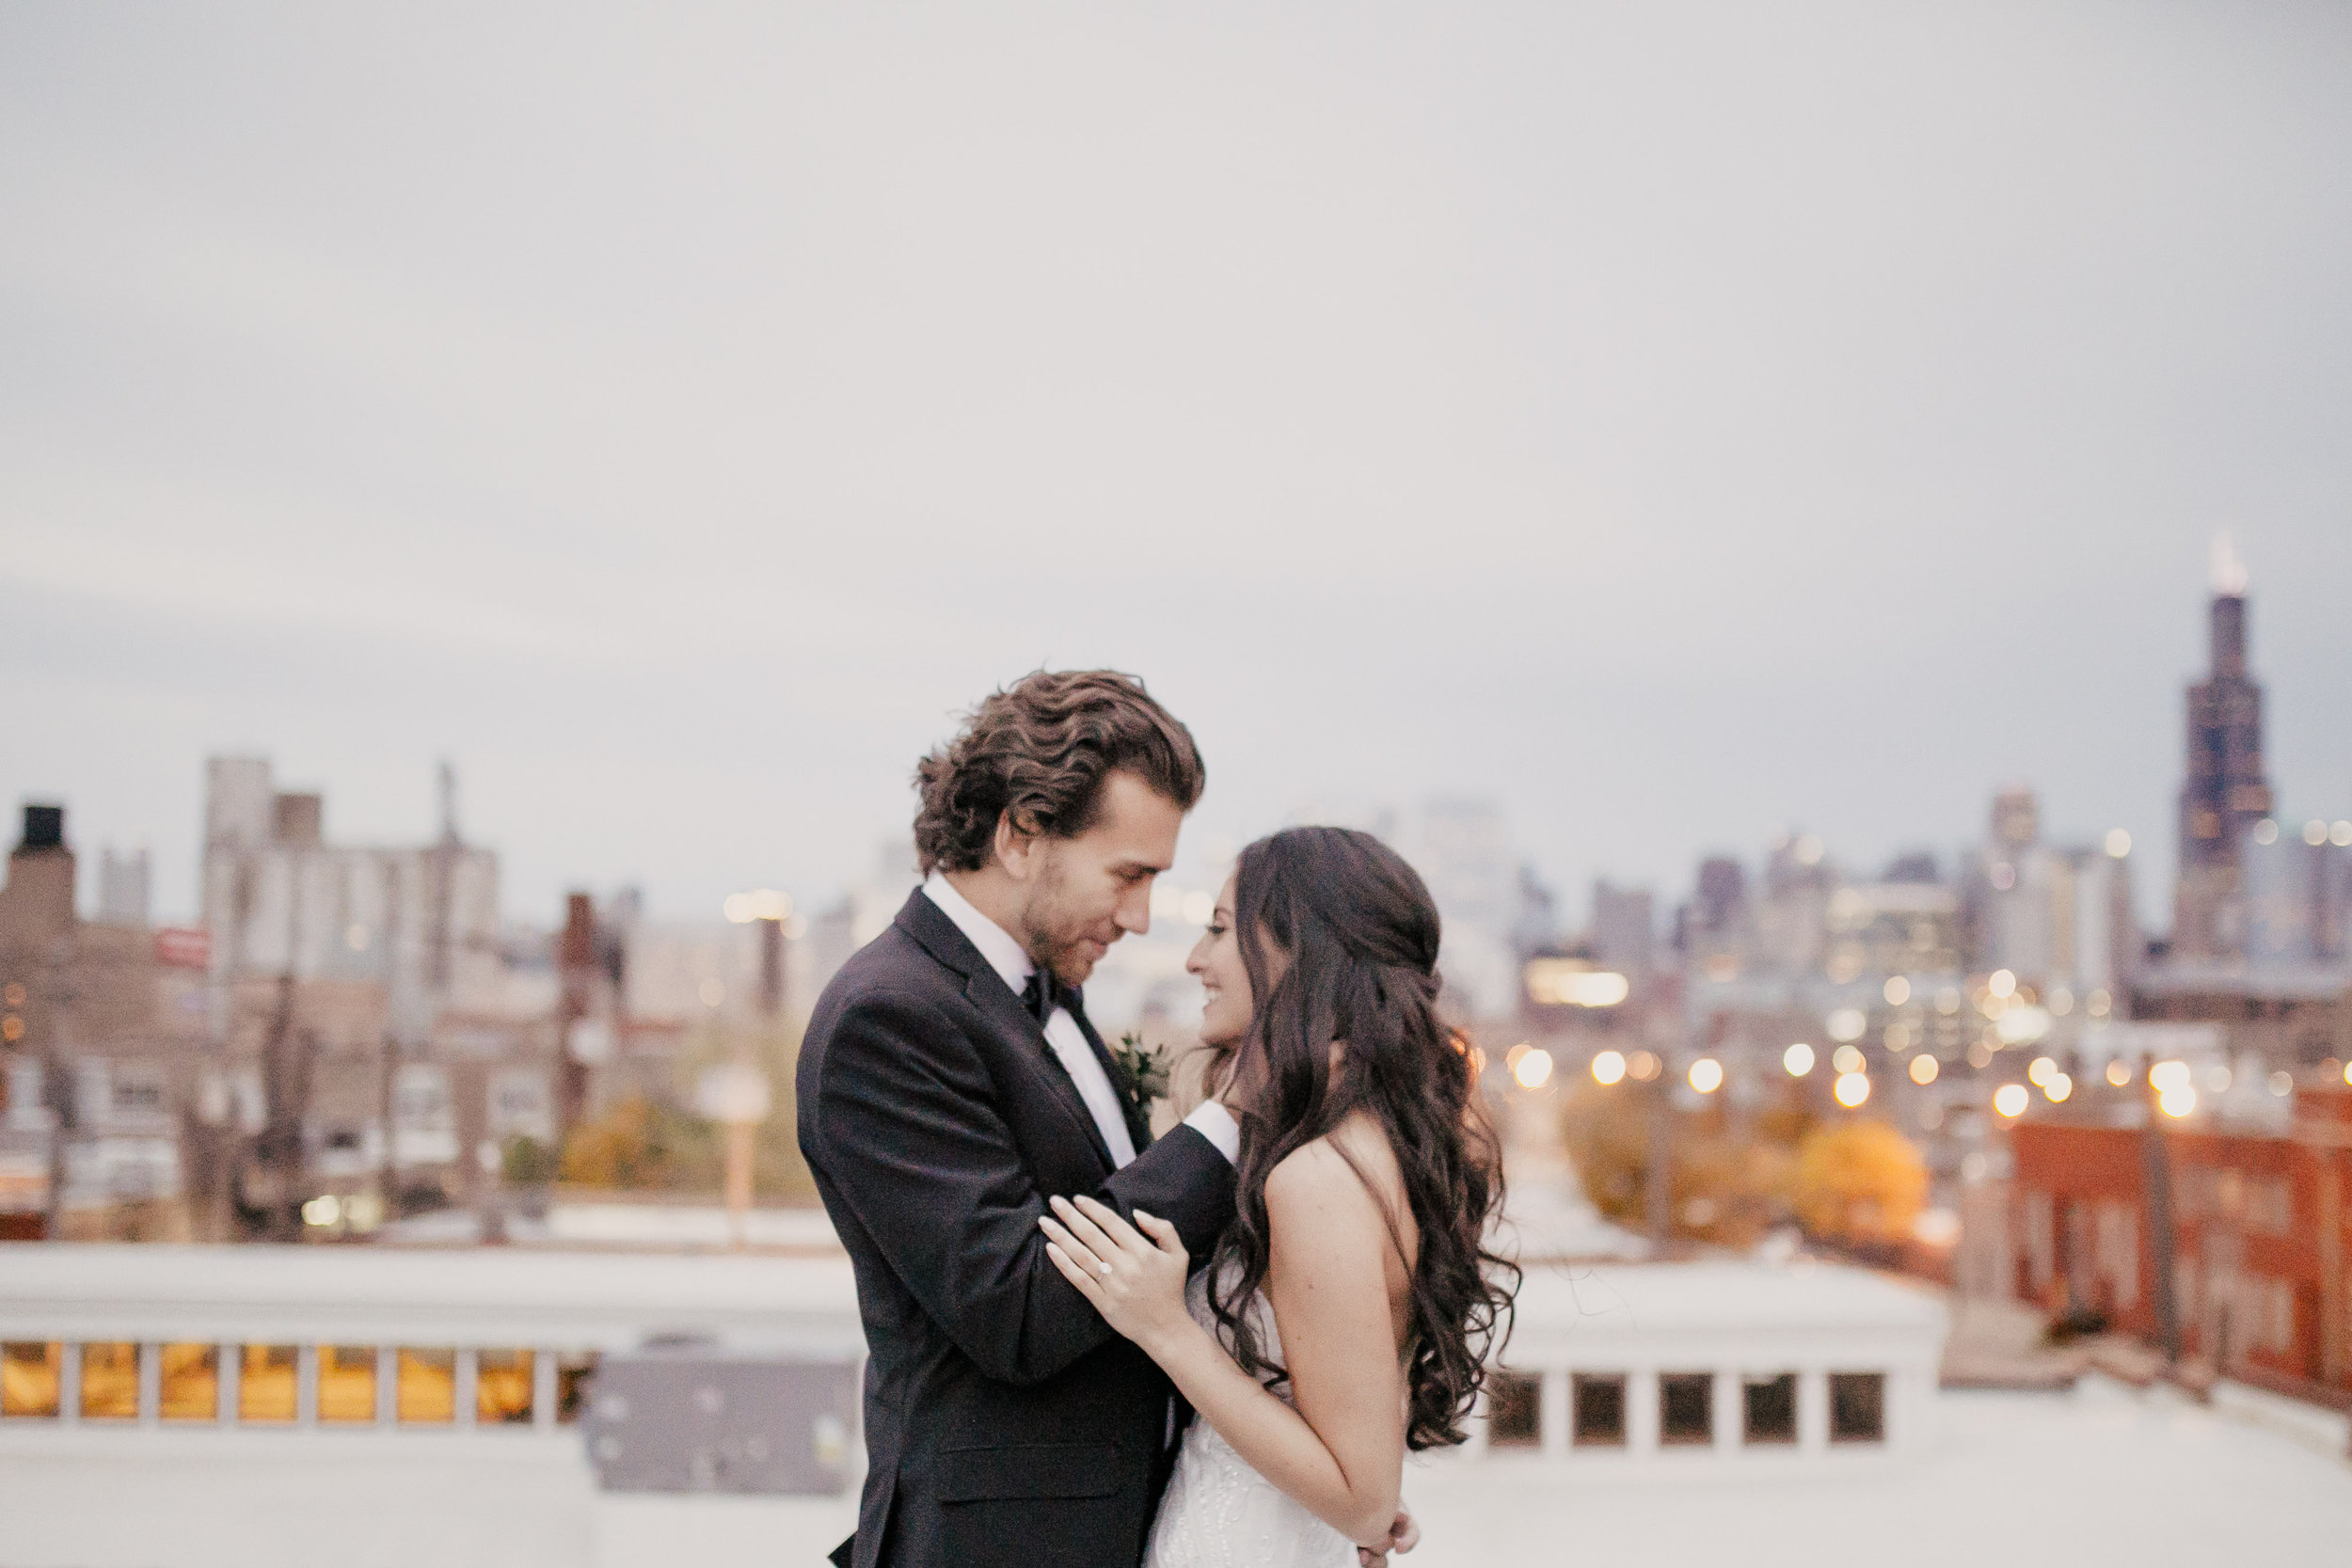 T_A Chicago Wedding Photography-402.jpg